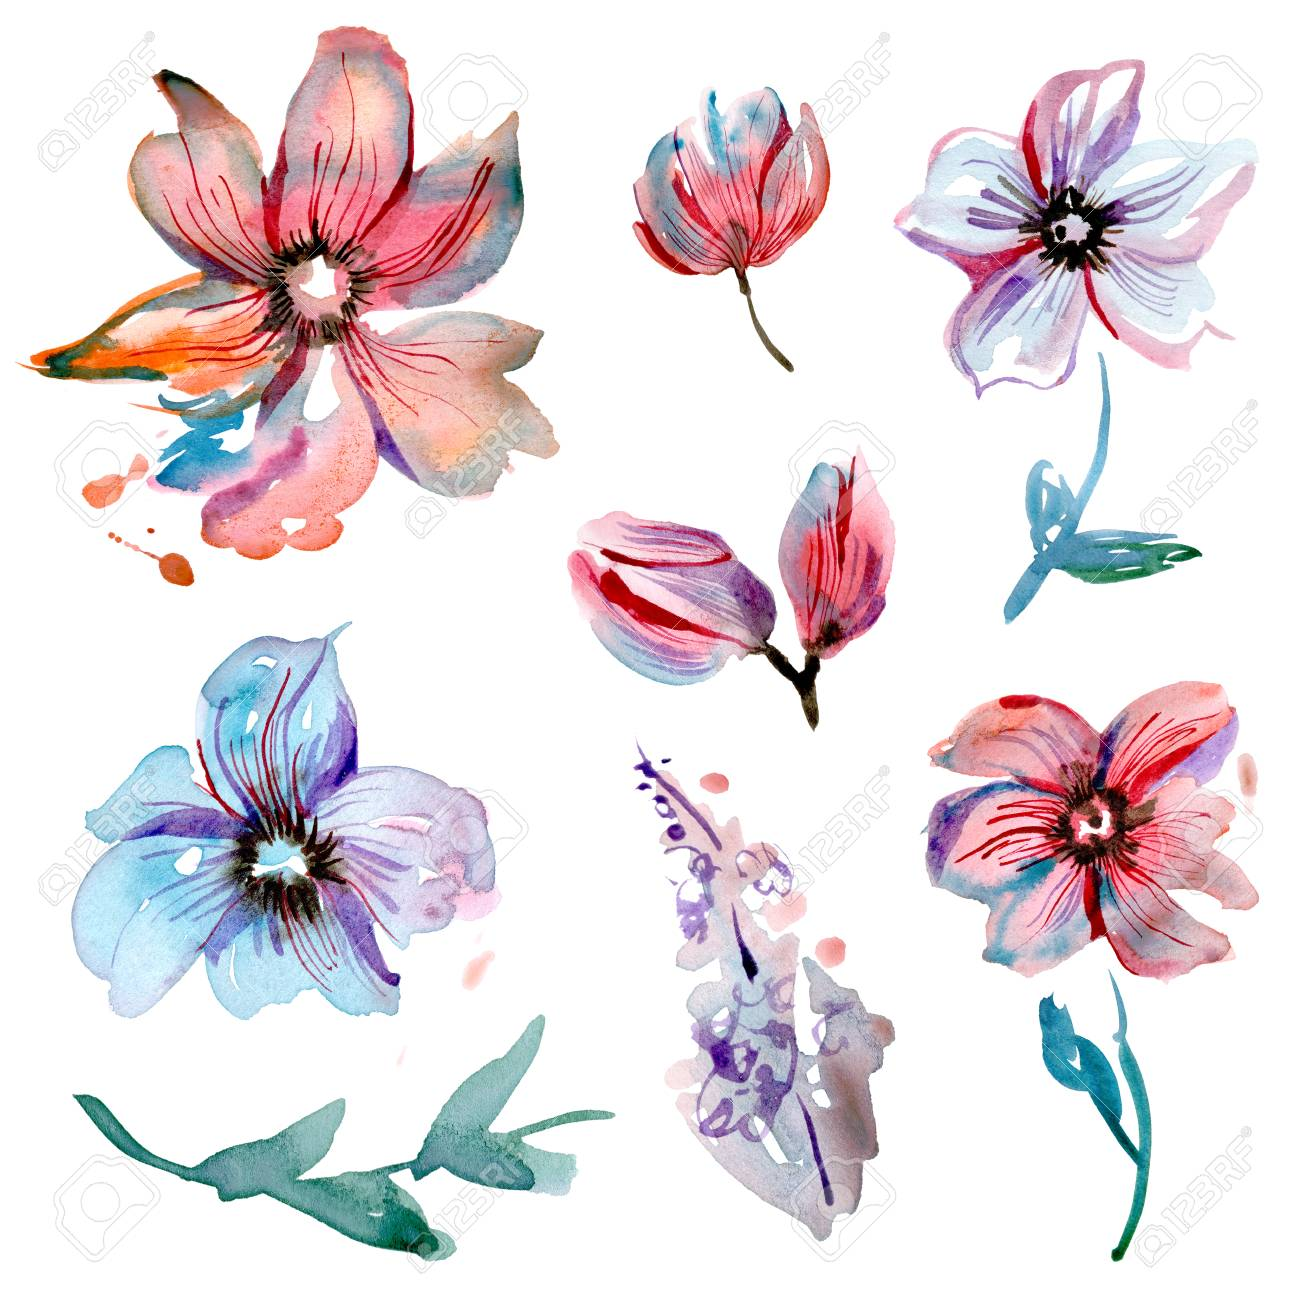 Cute Watercolor Hand Painted Flower Elements For Invitation Wedding